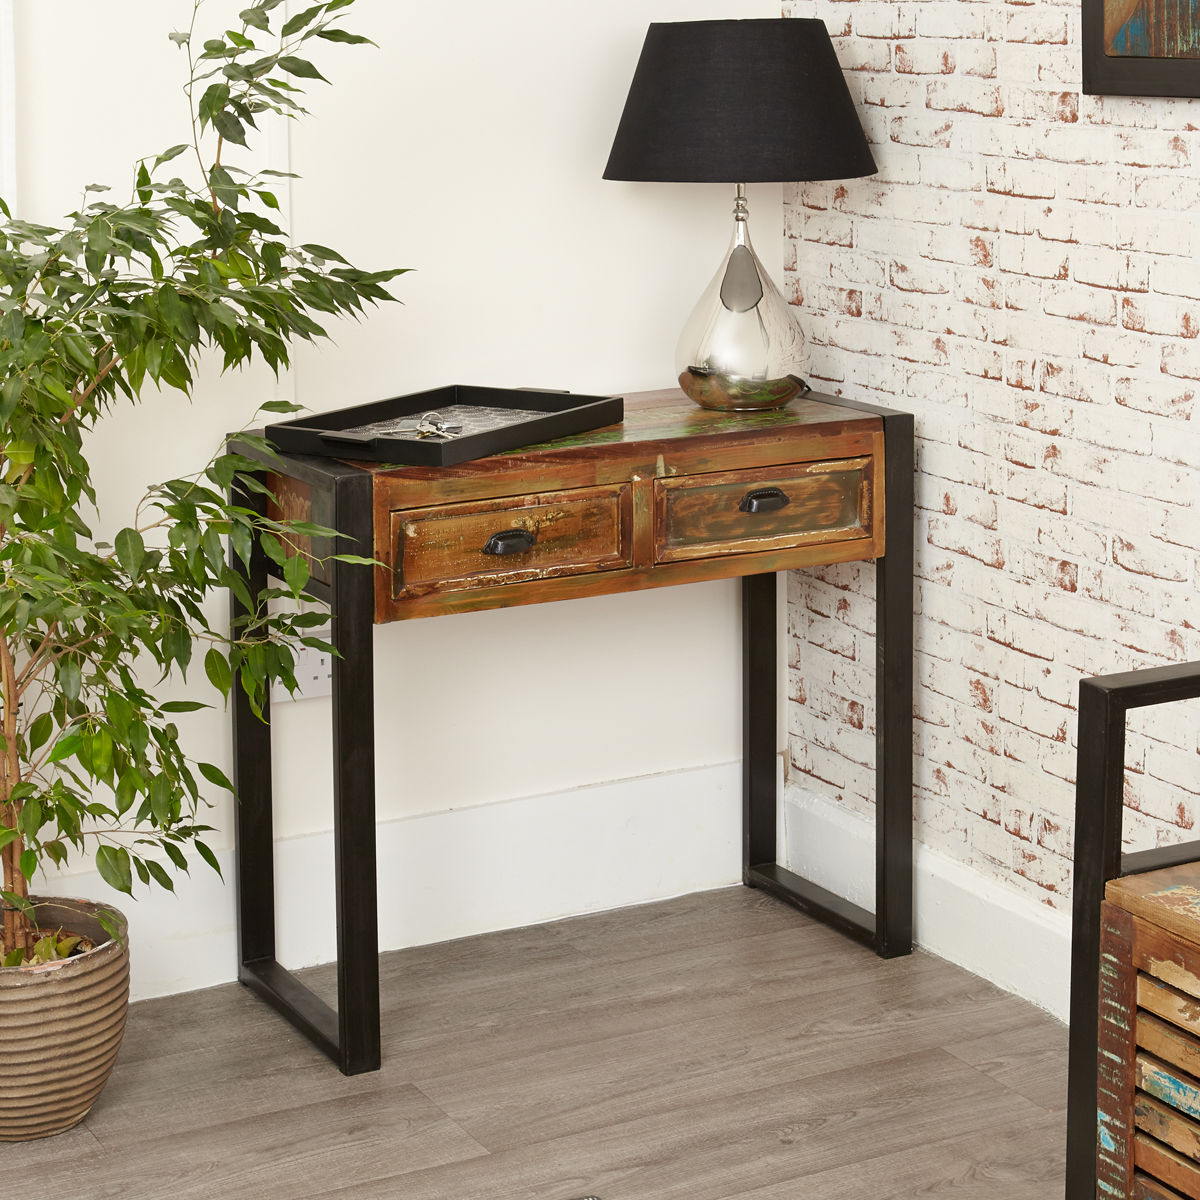 Urban chic console table wooden furniture store